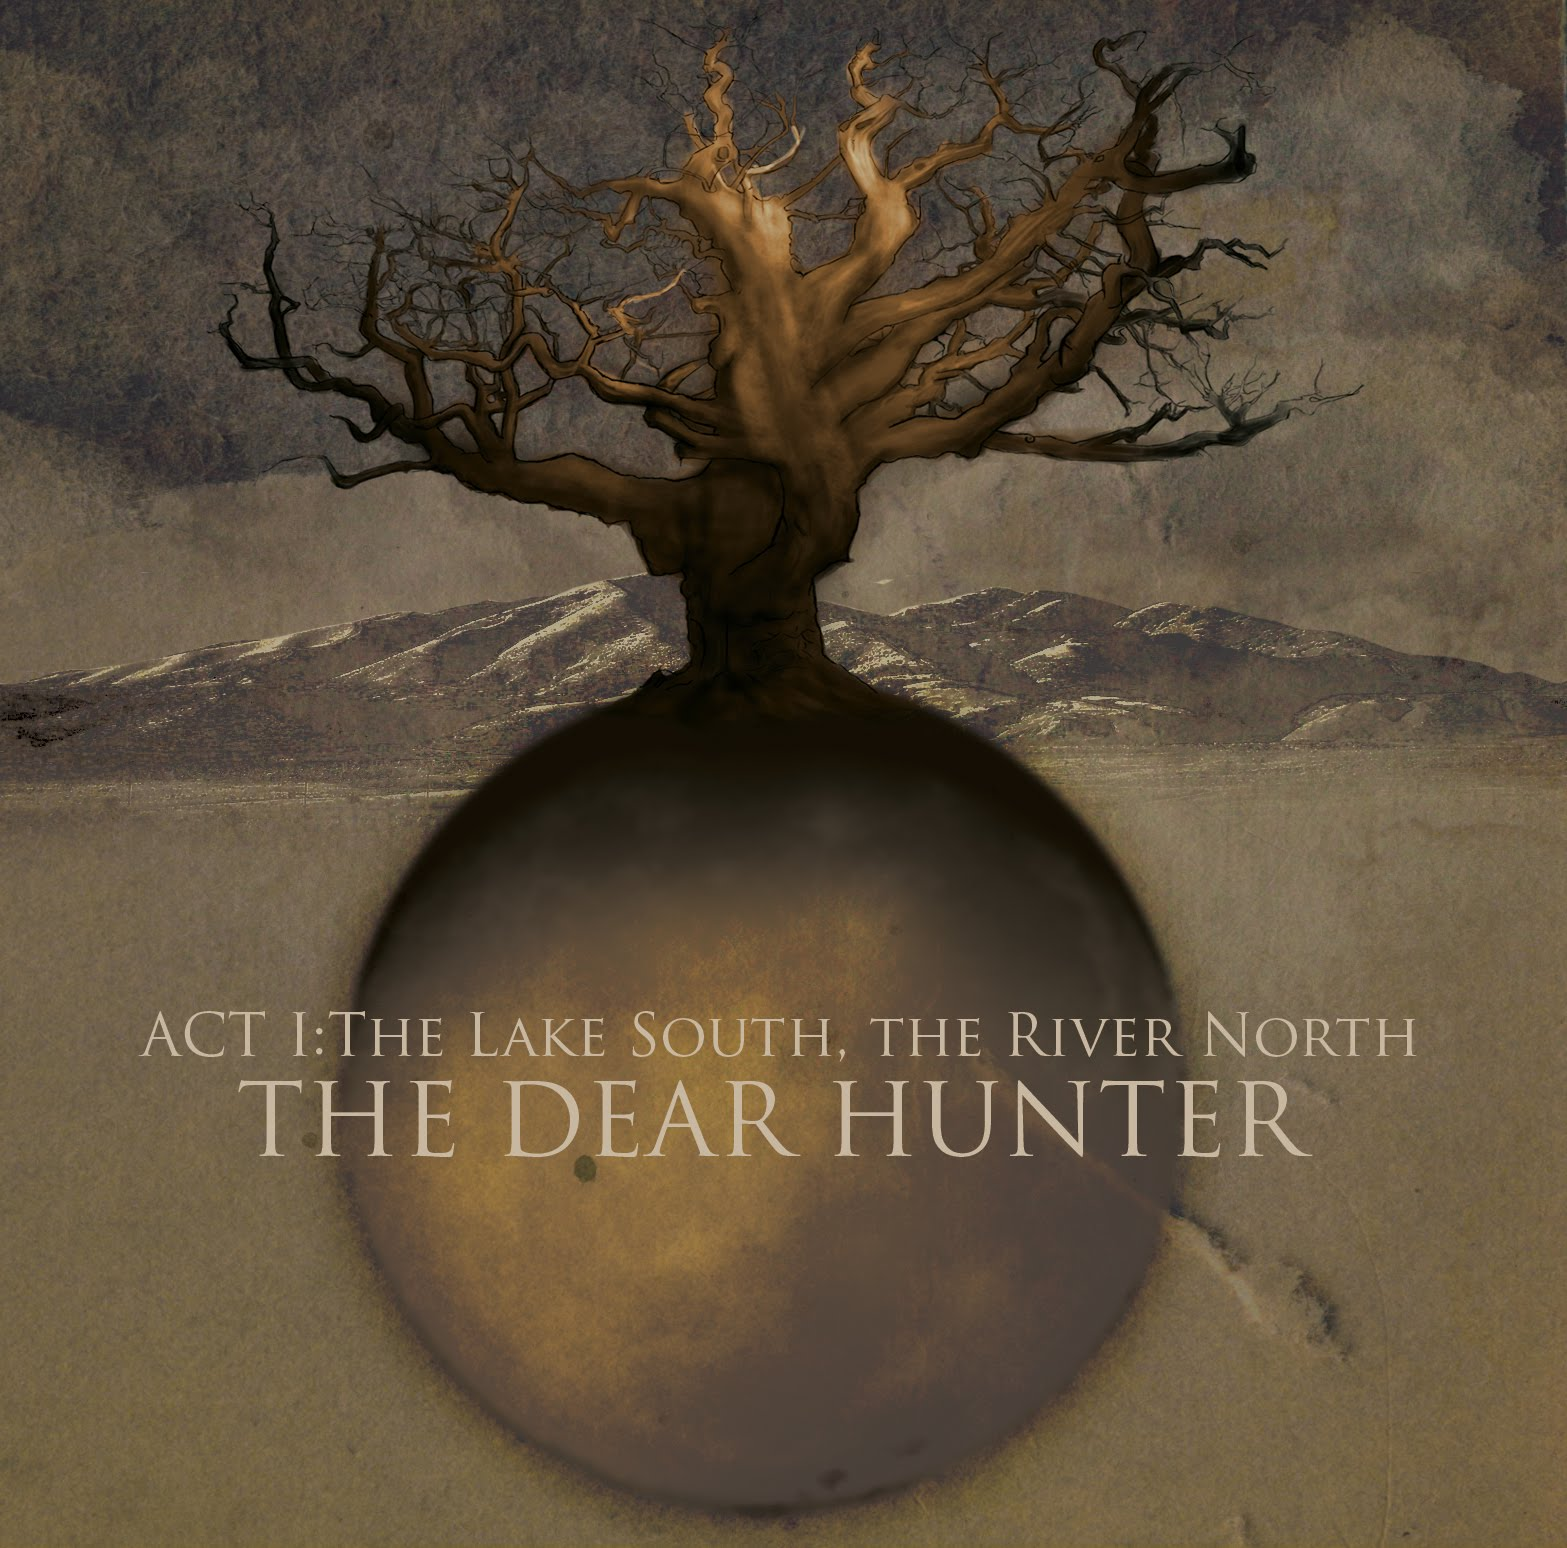 animationmusicvolume the dear hunter act i the lake south the river north v2. Black Bedroom Furniture Sets. Home Design Ideas